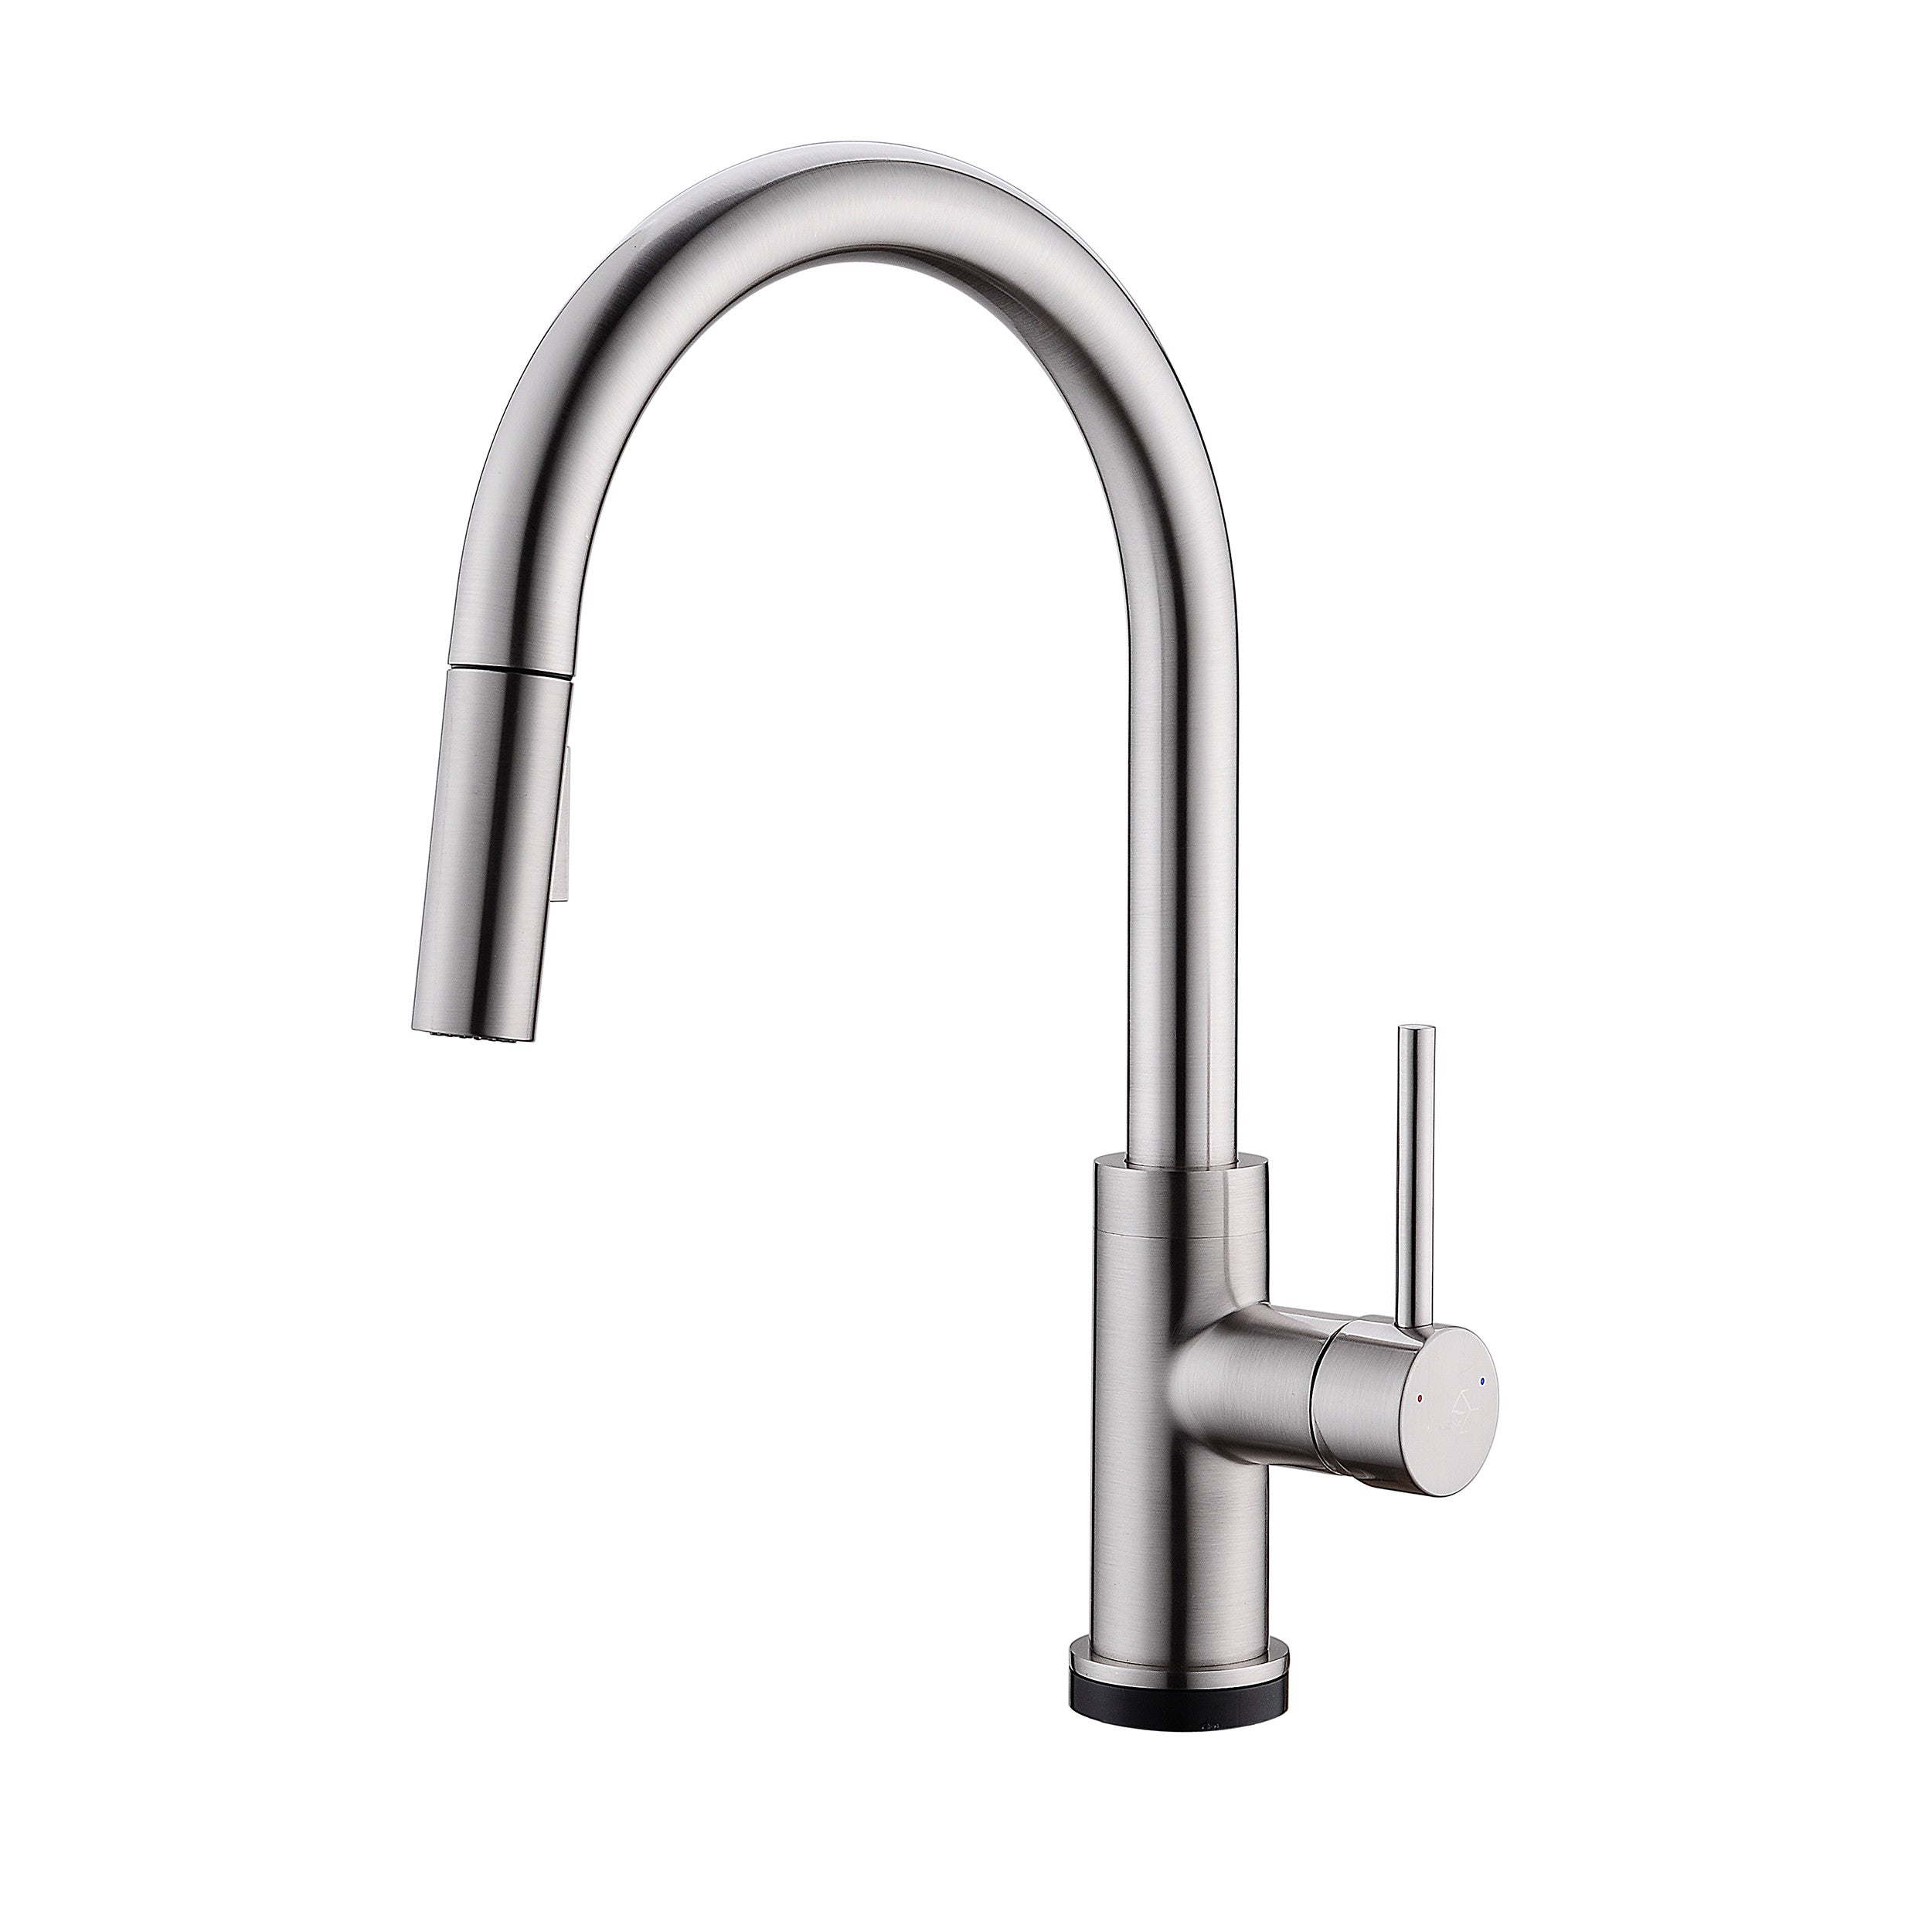 Bai 0651 single handle kitchen faucet with pull down spray touch to on off brushed finish